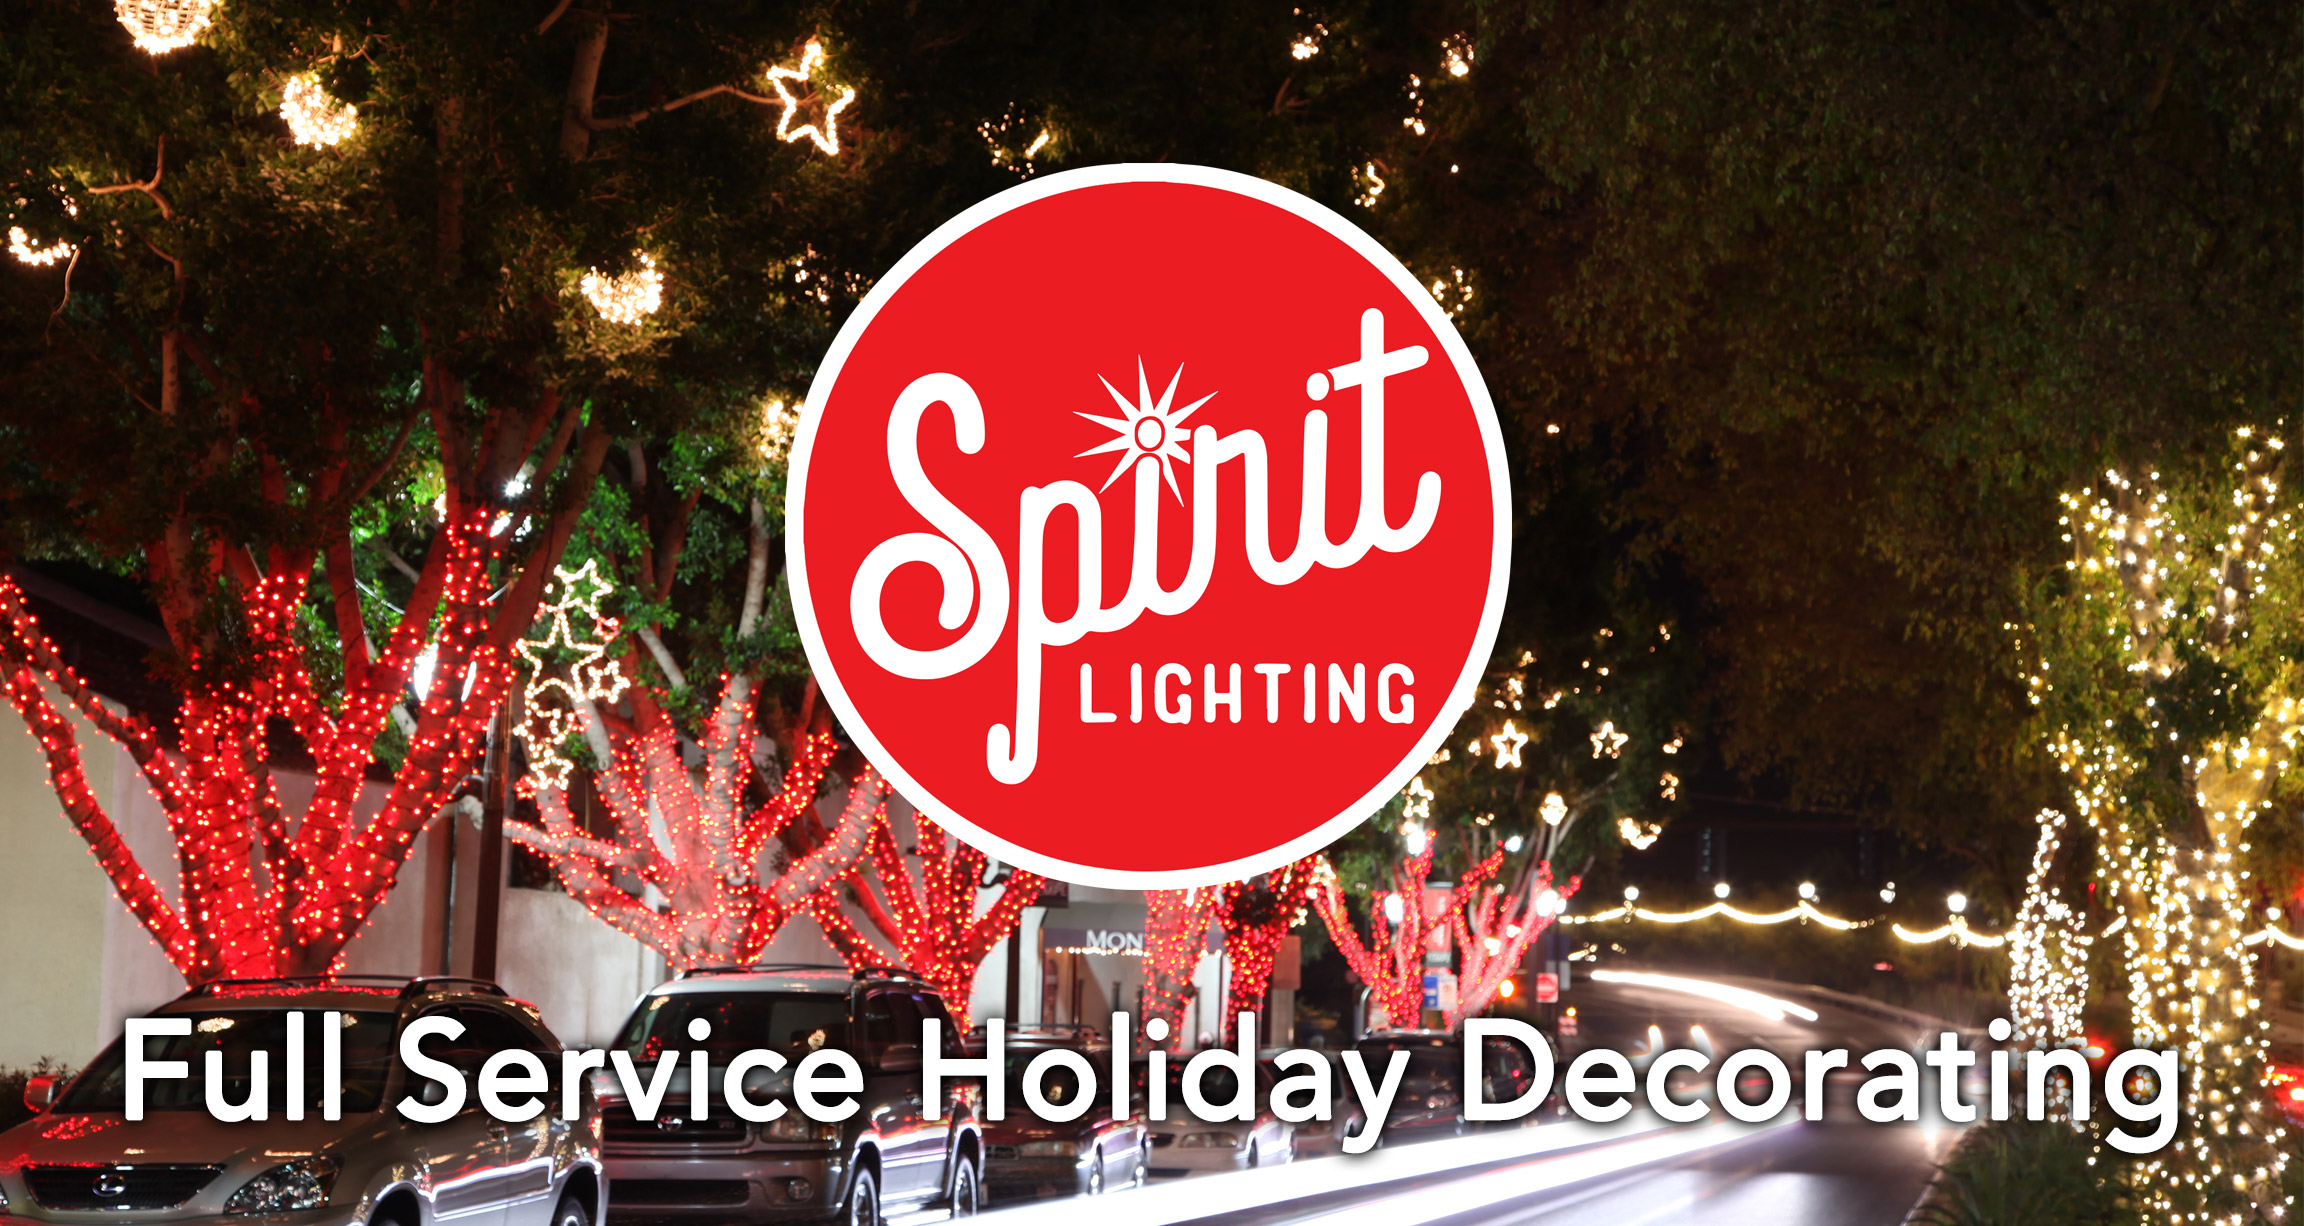 SPIRIT LIGHTING IS A FULL SERVICE HOLIDAY DECORATING COMPANY IN PHOENIX, ARIZONA